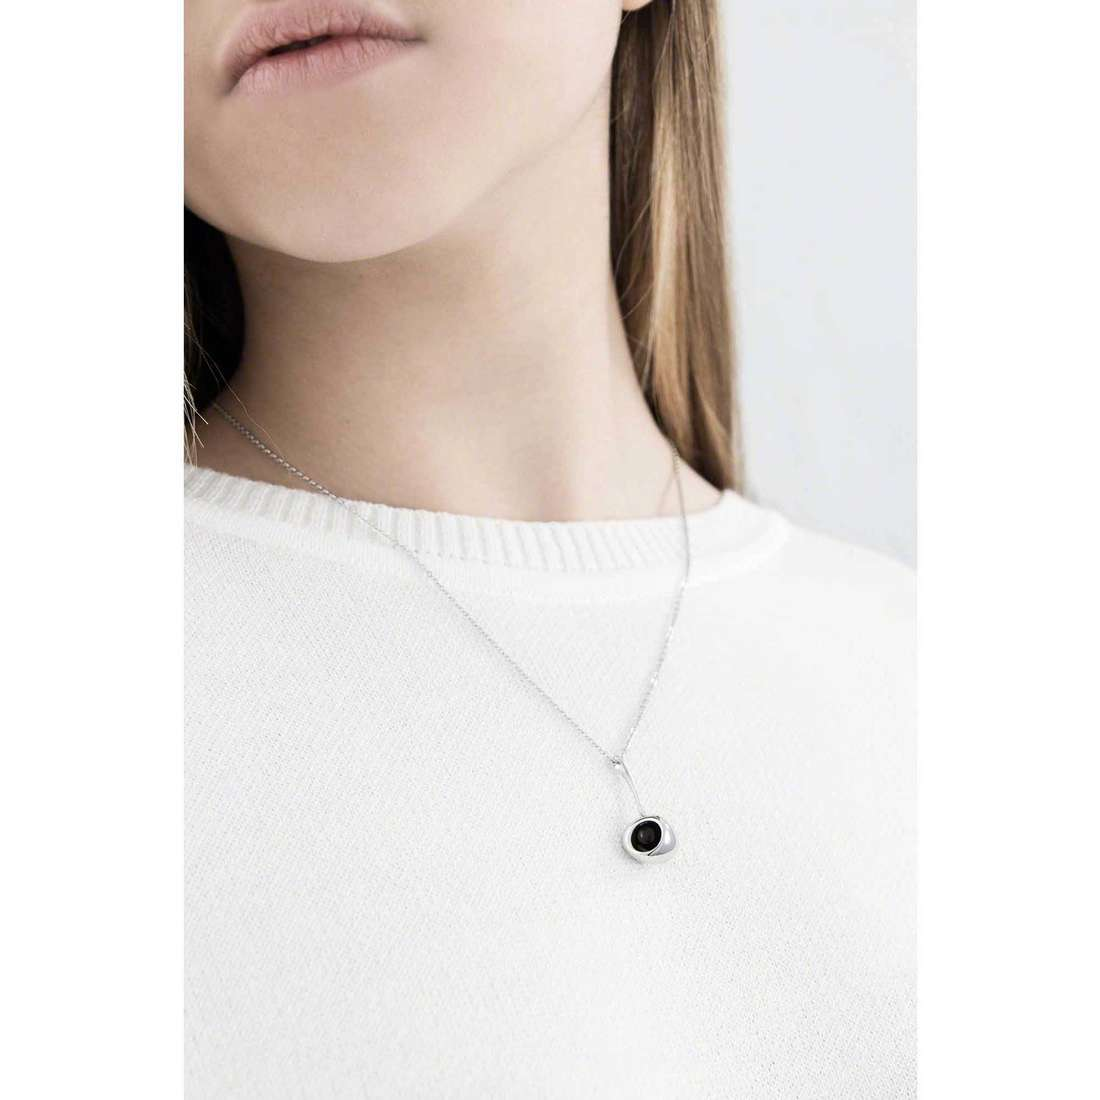 Breil necklaces Red woman TJ1858 indosso